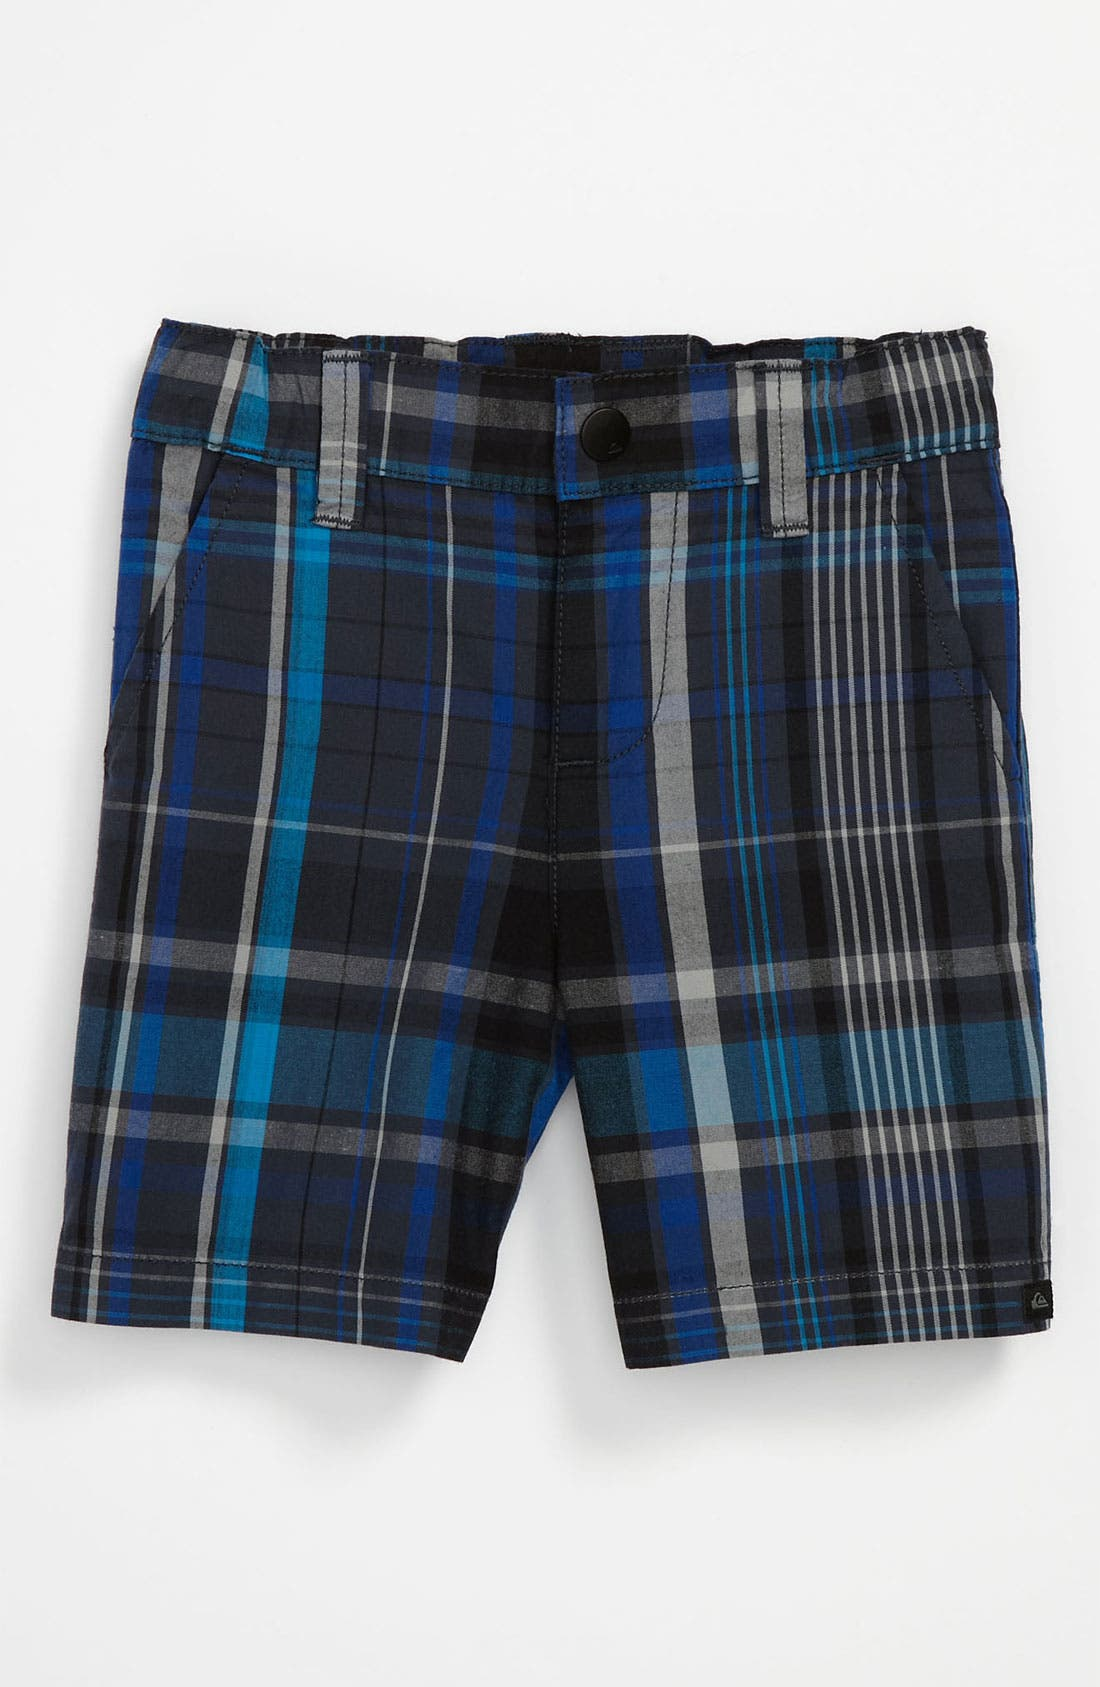 Alternate Image 1 Selected - Quiksilver 'Cordova' Plaid Shorts (Toddler)